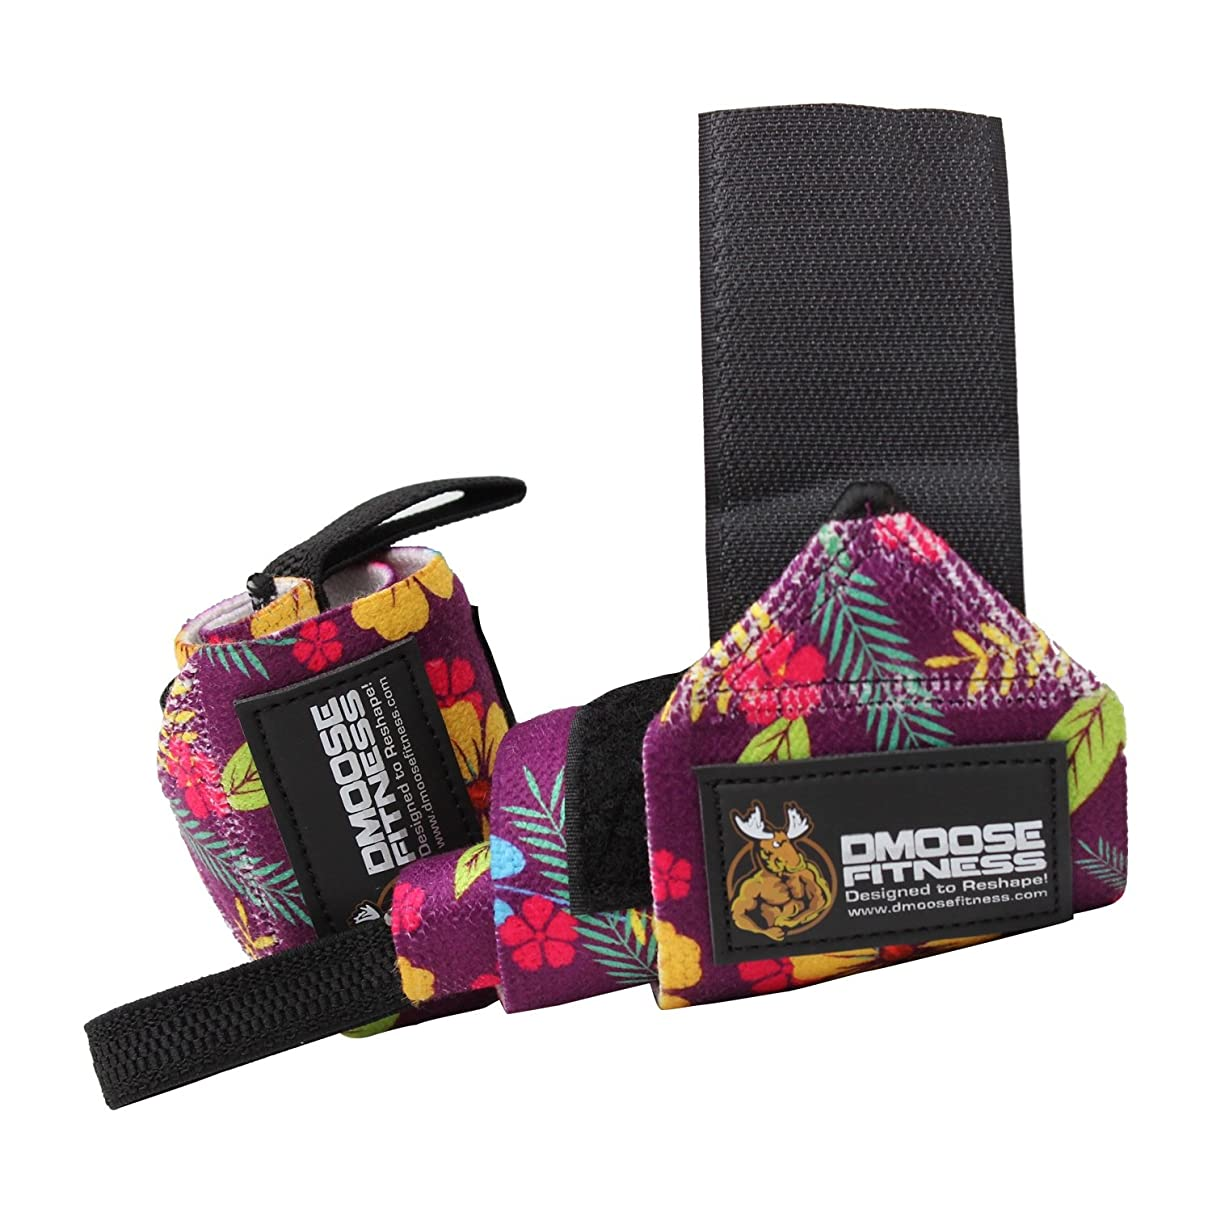 DMoose Fitness Wrist Wraps – Premium Quality, Strong Fastening Straps, Thumb Loops – Maximize Your Weightlifting, Powerlifting, Bodybuilding, Strength Training & Crossfit